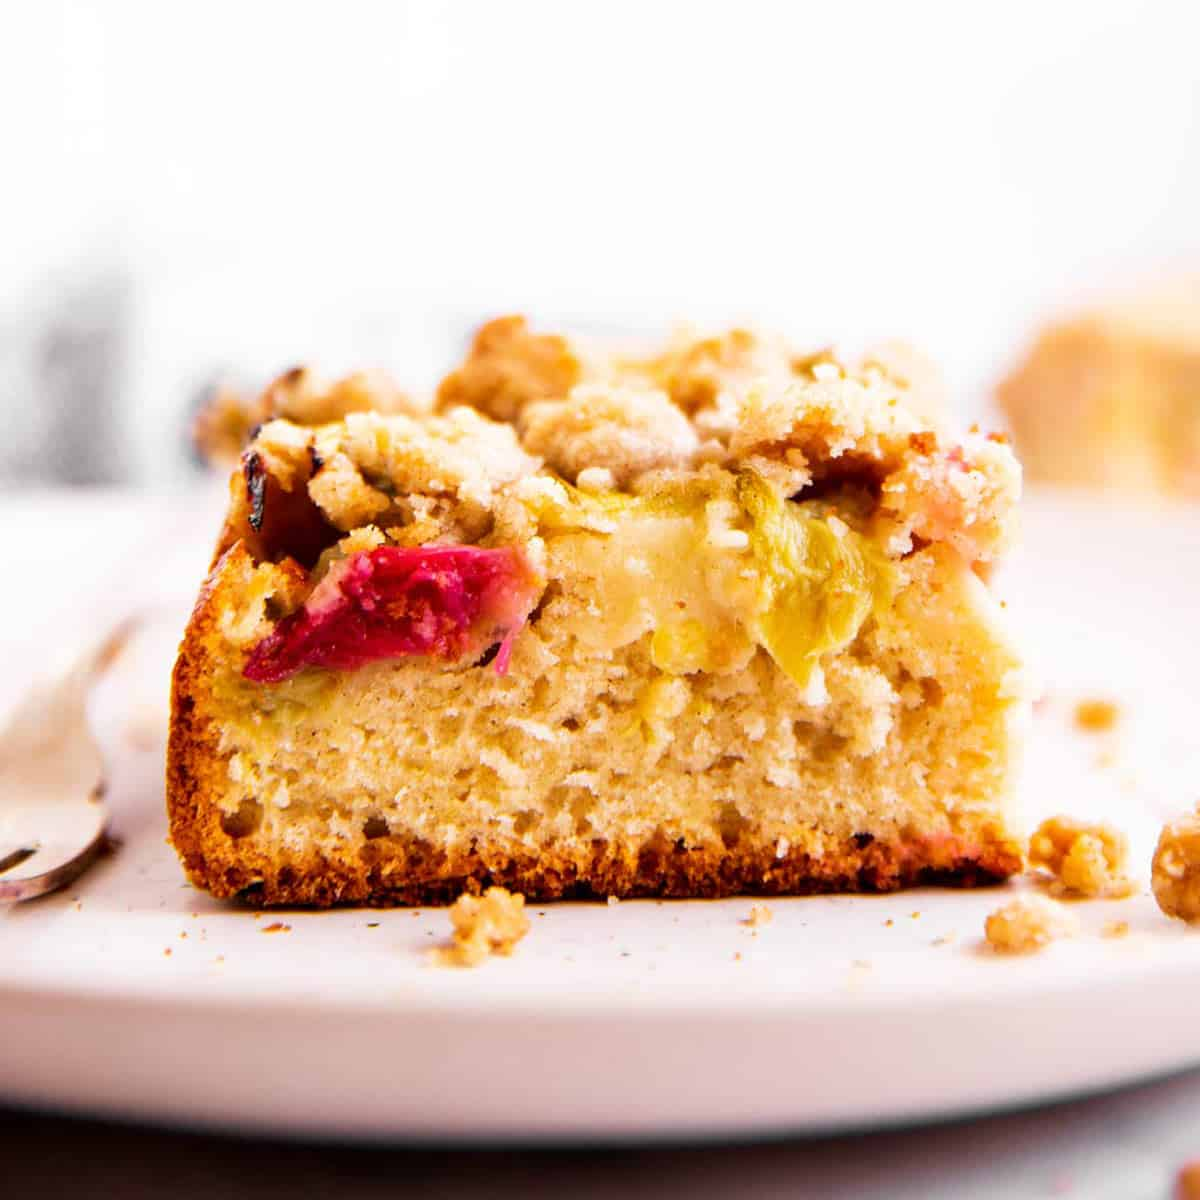 frontal view of rhubarb coffee cake slice on plate